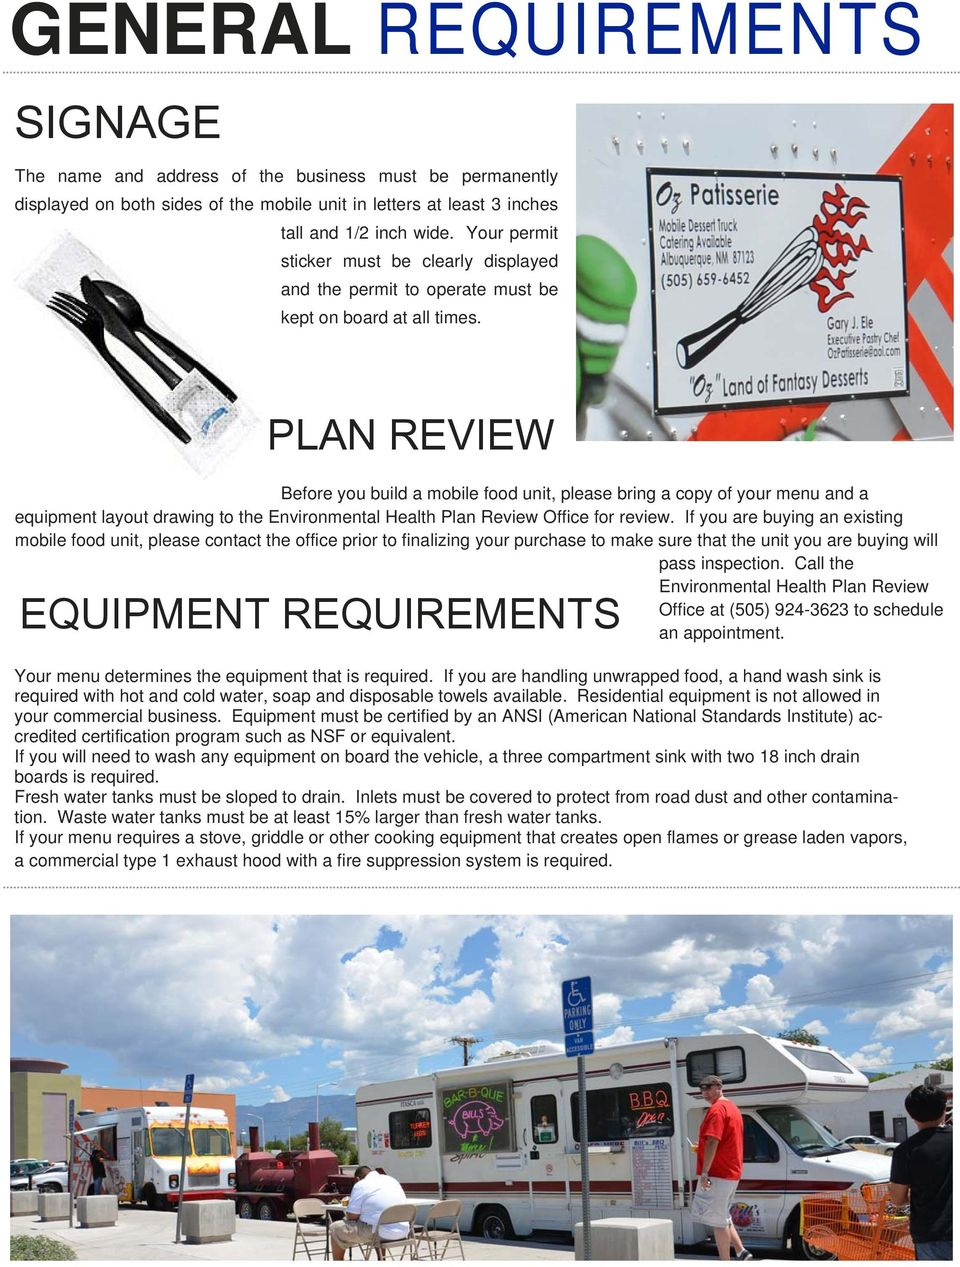 PLAN REVIEW Before you build a mobile food unit, please bring a copy of your menu and a equipment layout drawing to the Environmental Health Plan Review Office for review.